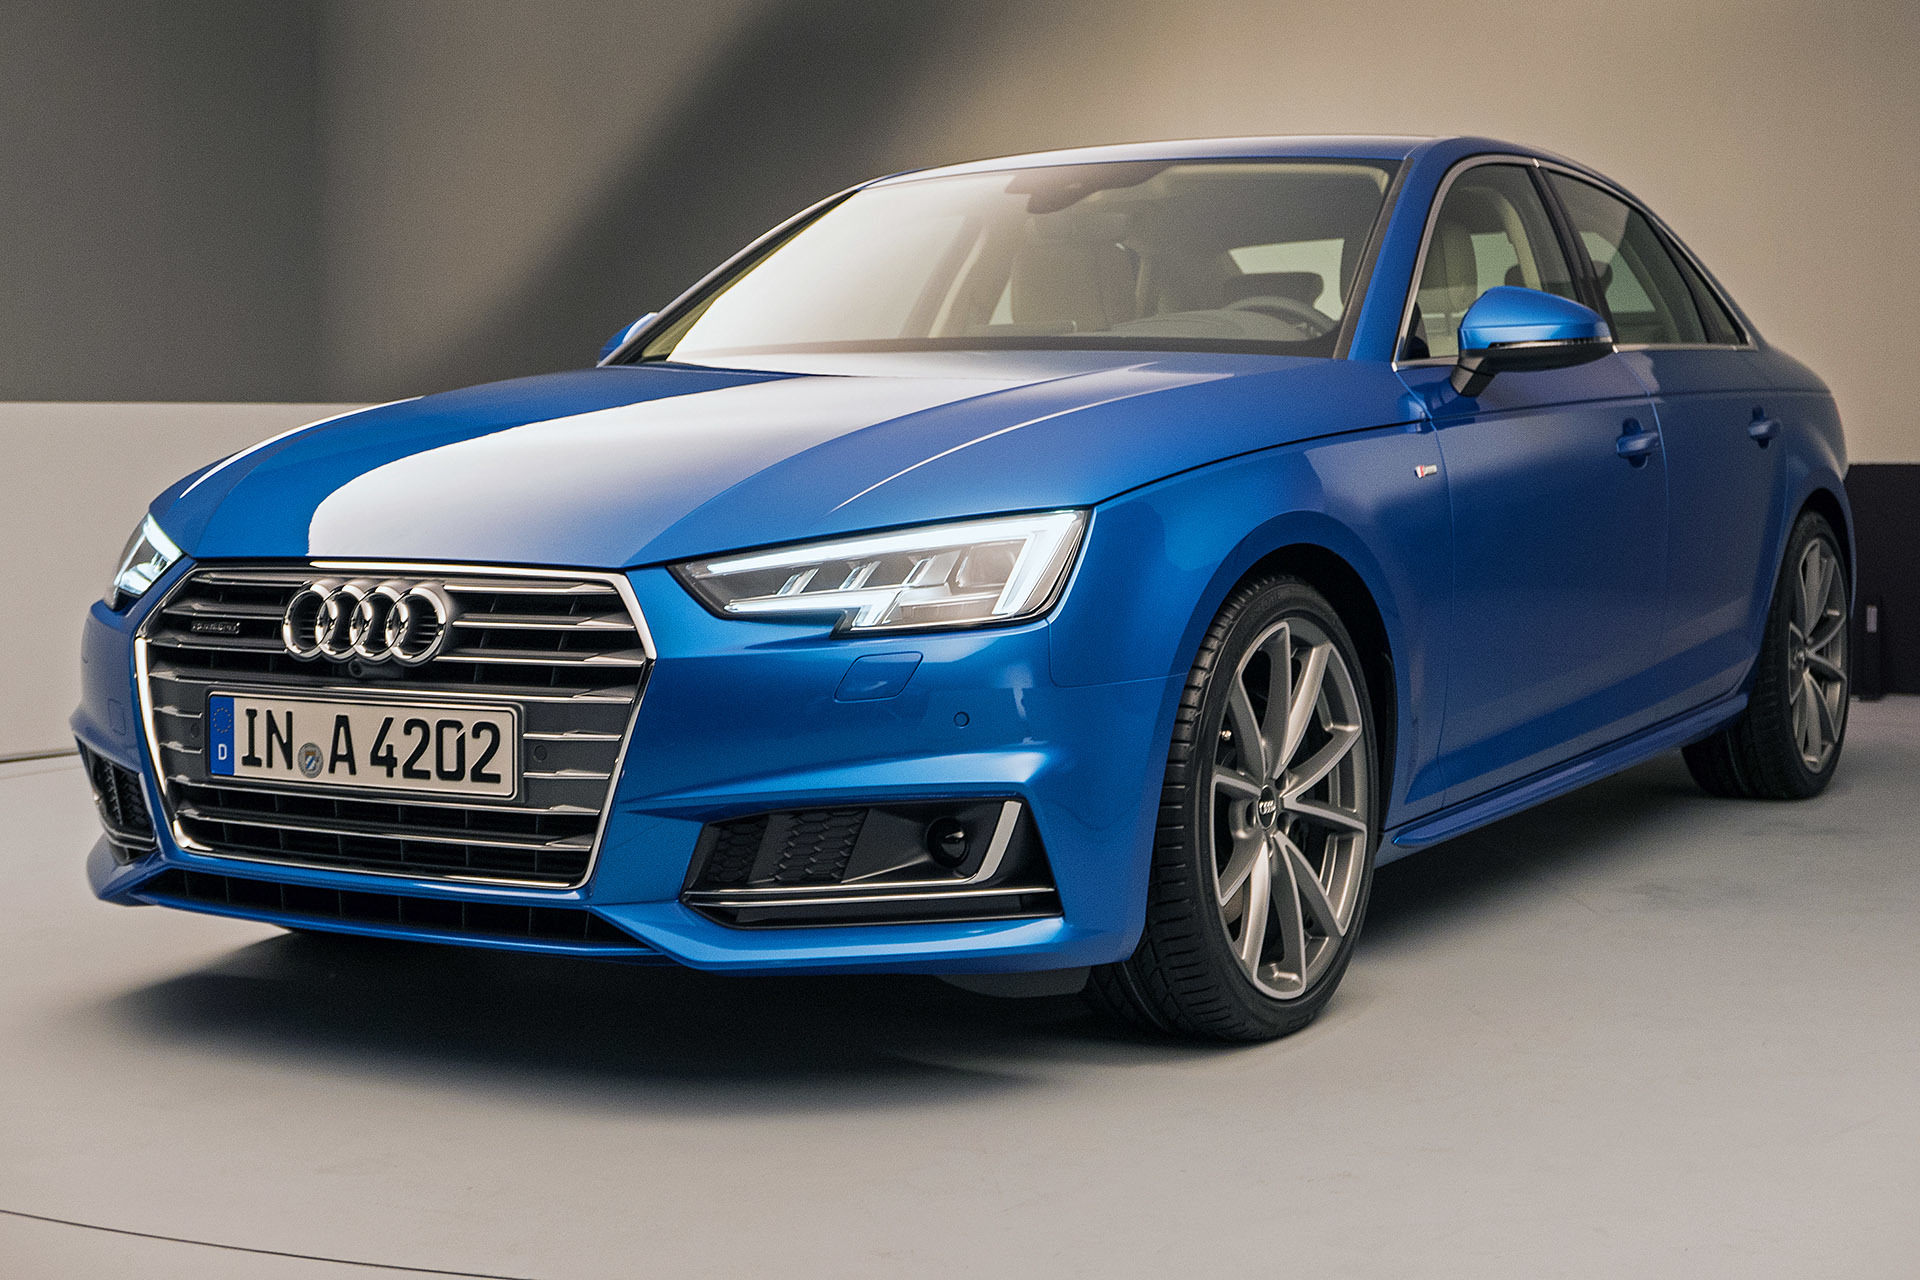 Audi rs3 hatchback price in india 11